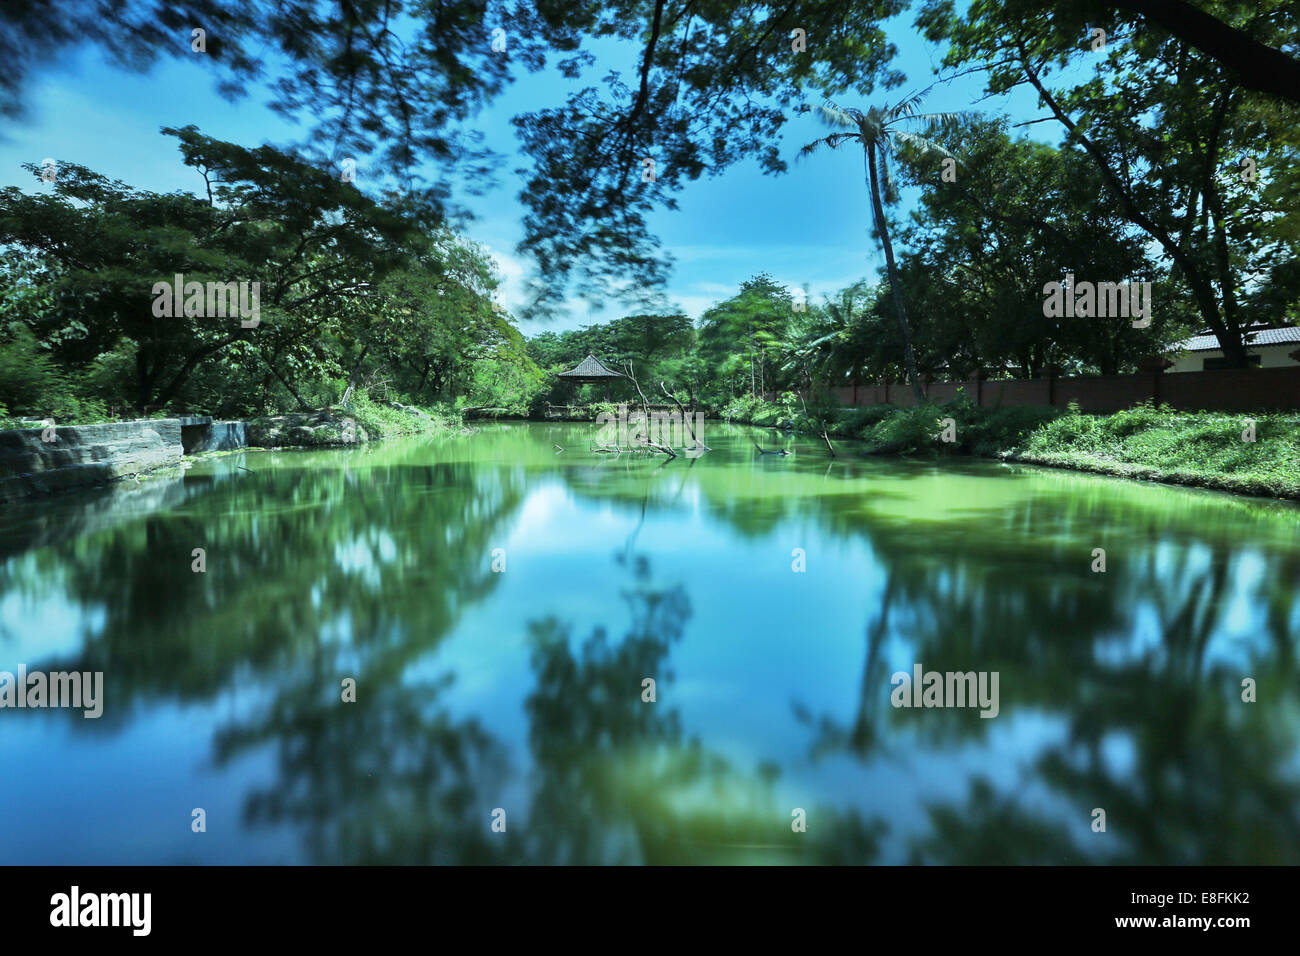 Old Garden At Astana Kesepuhan, Cirebon Stock Photo